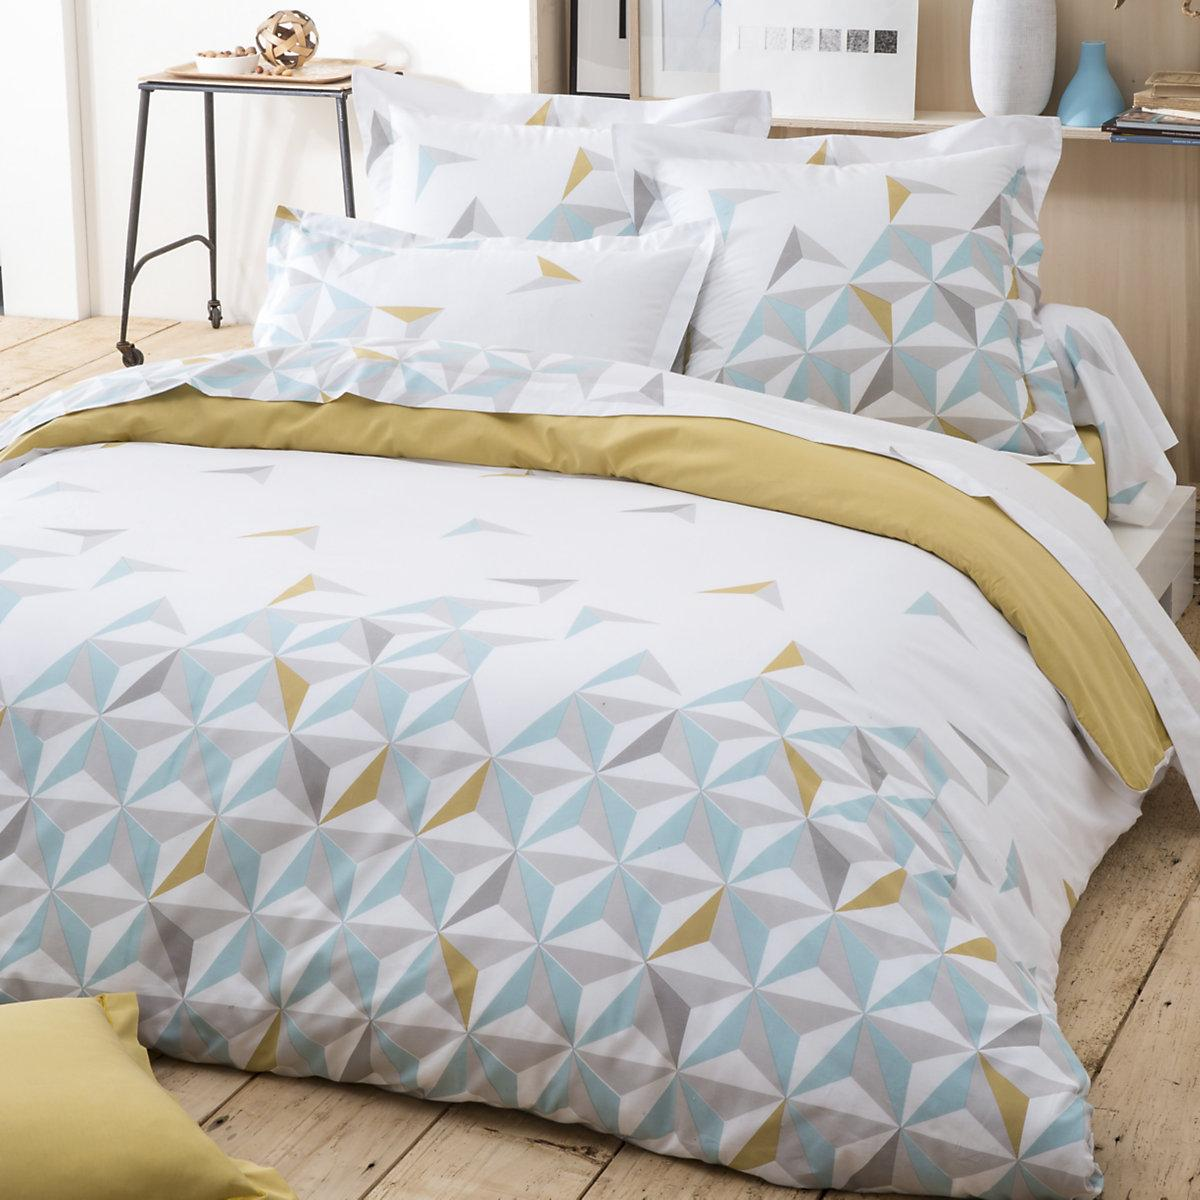 Couette soldes